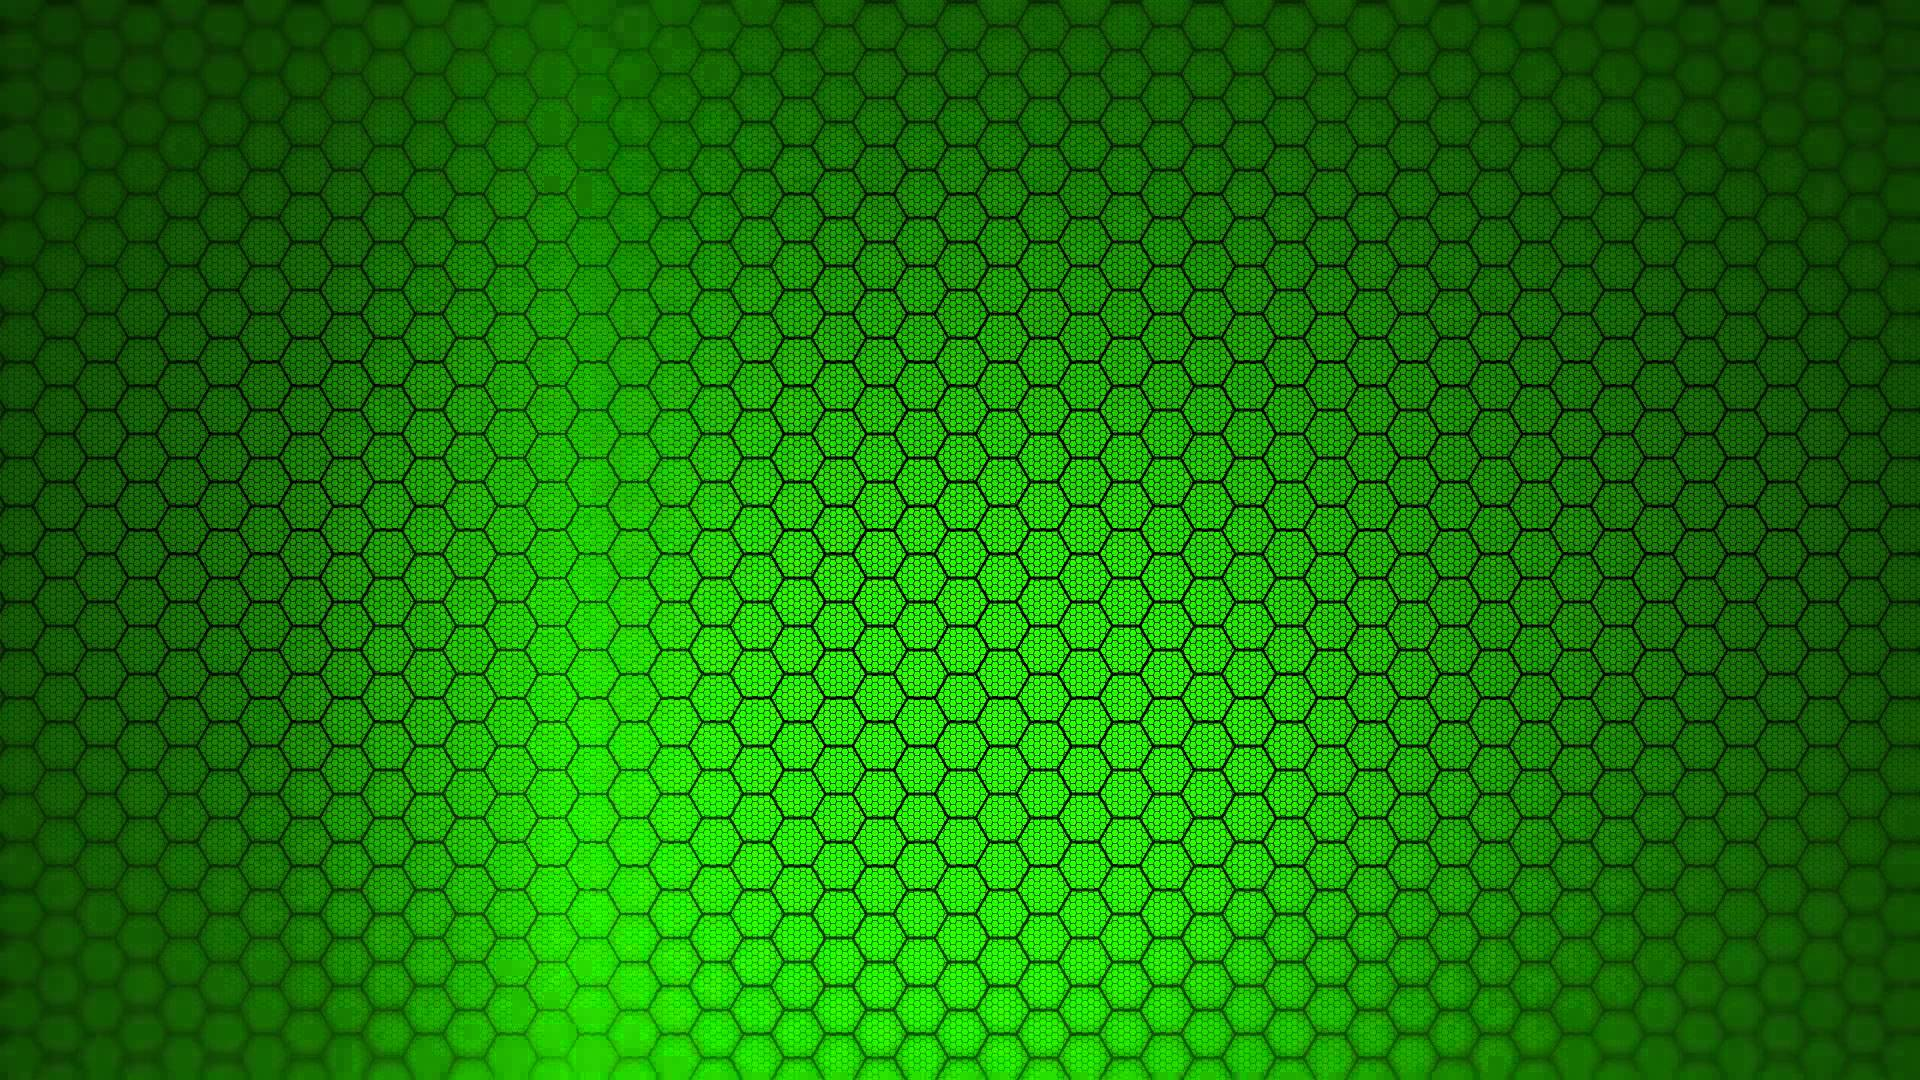 3d Hd Wallpapers Green